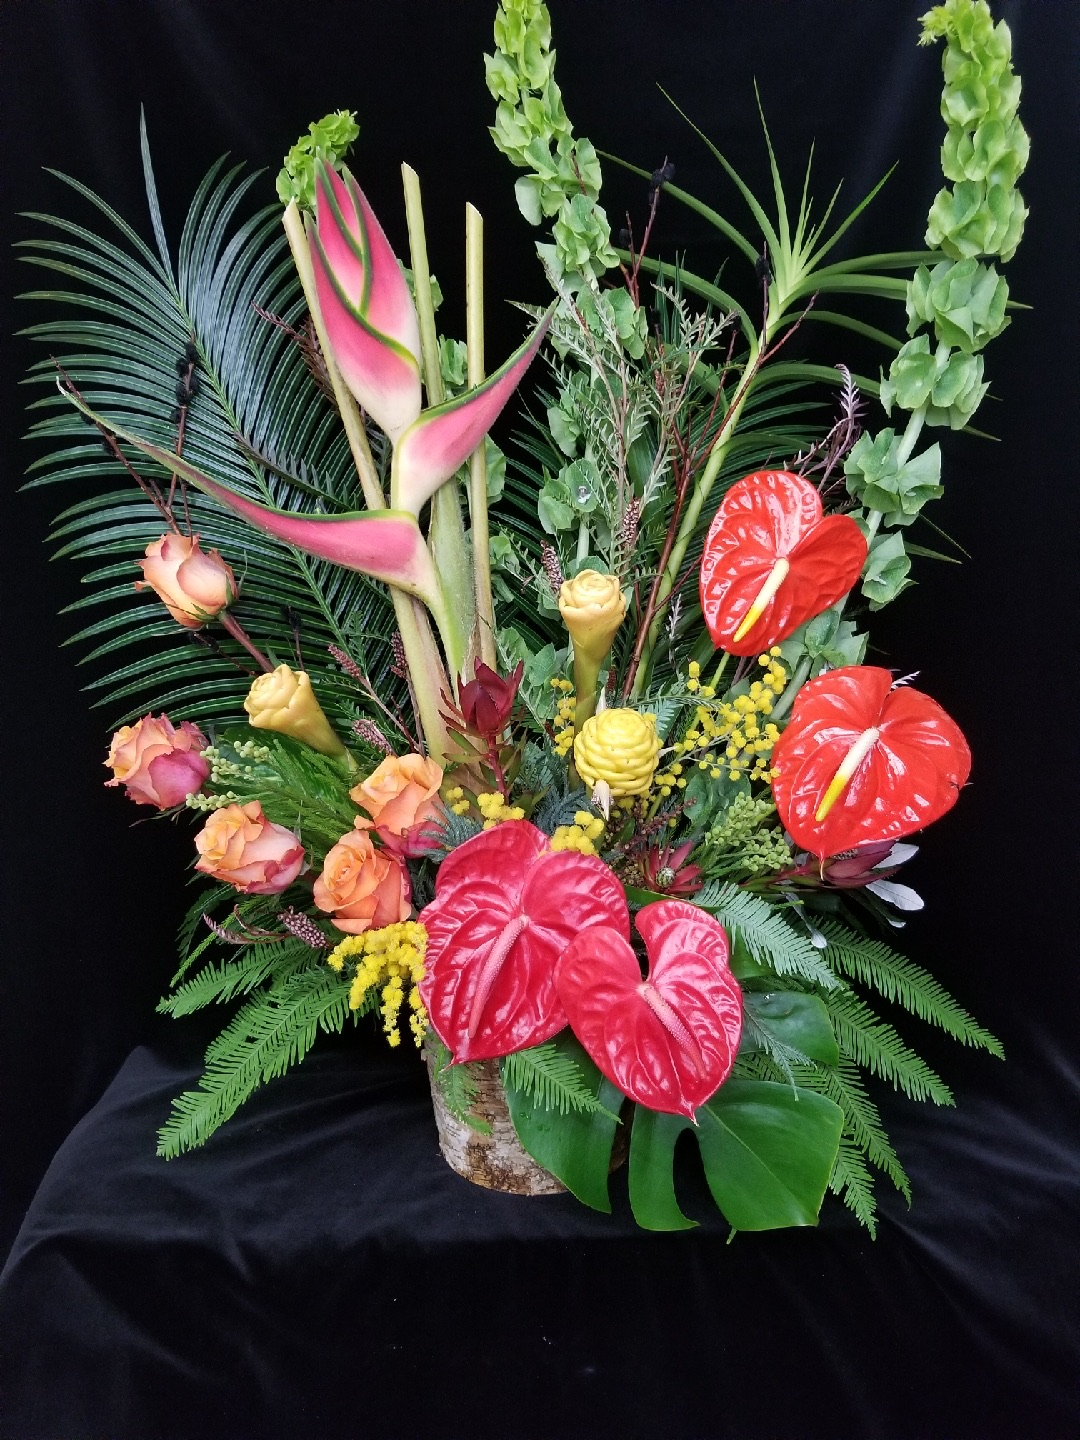 25. Showy tropical with roses